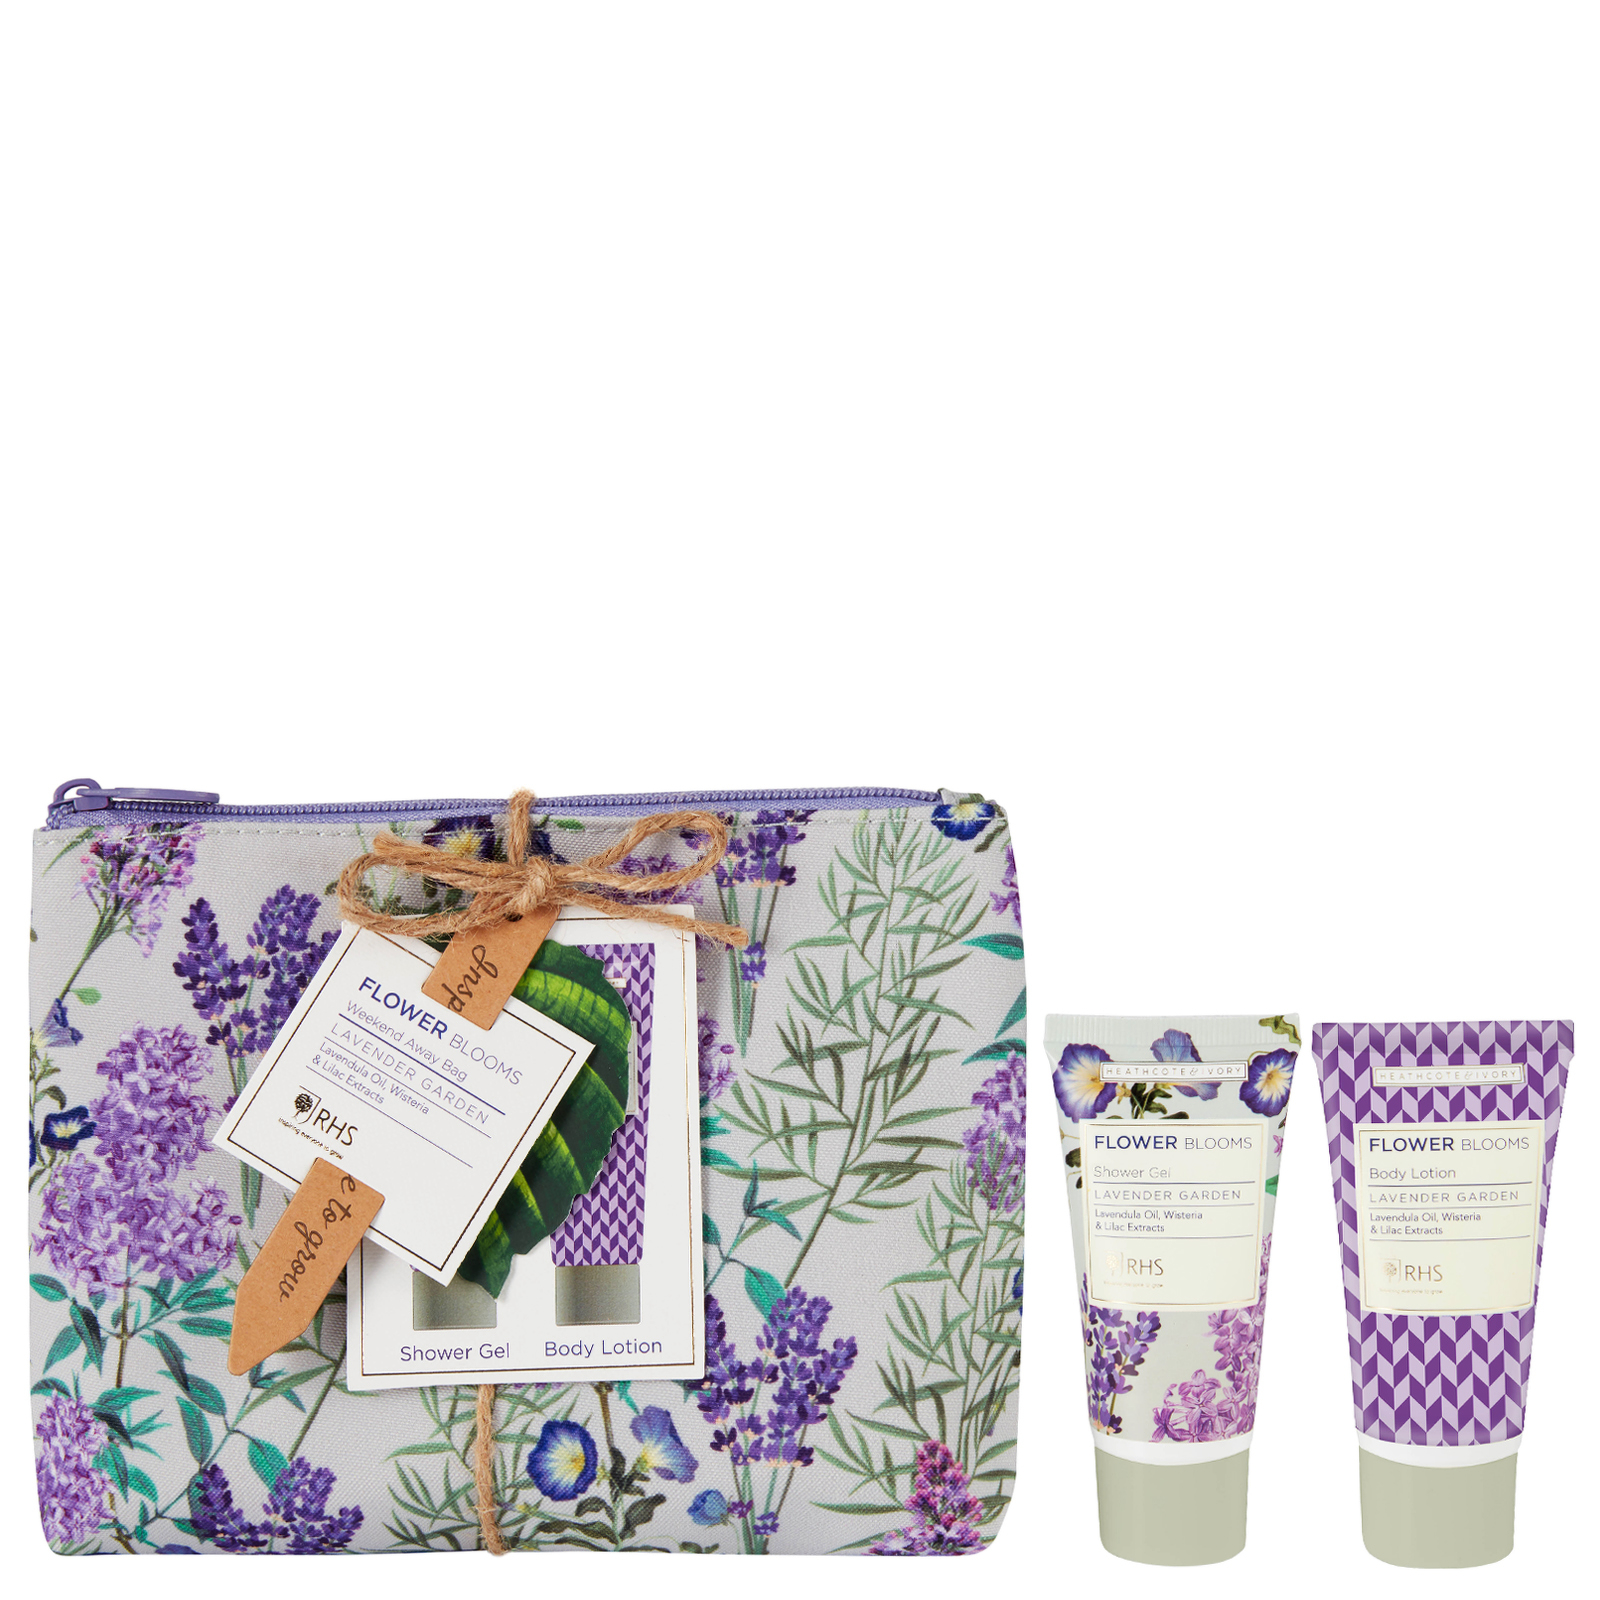 RHS Flower Blooms Lavender Garden Weekend Away Bag